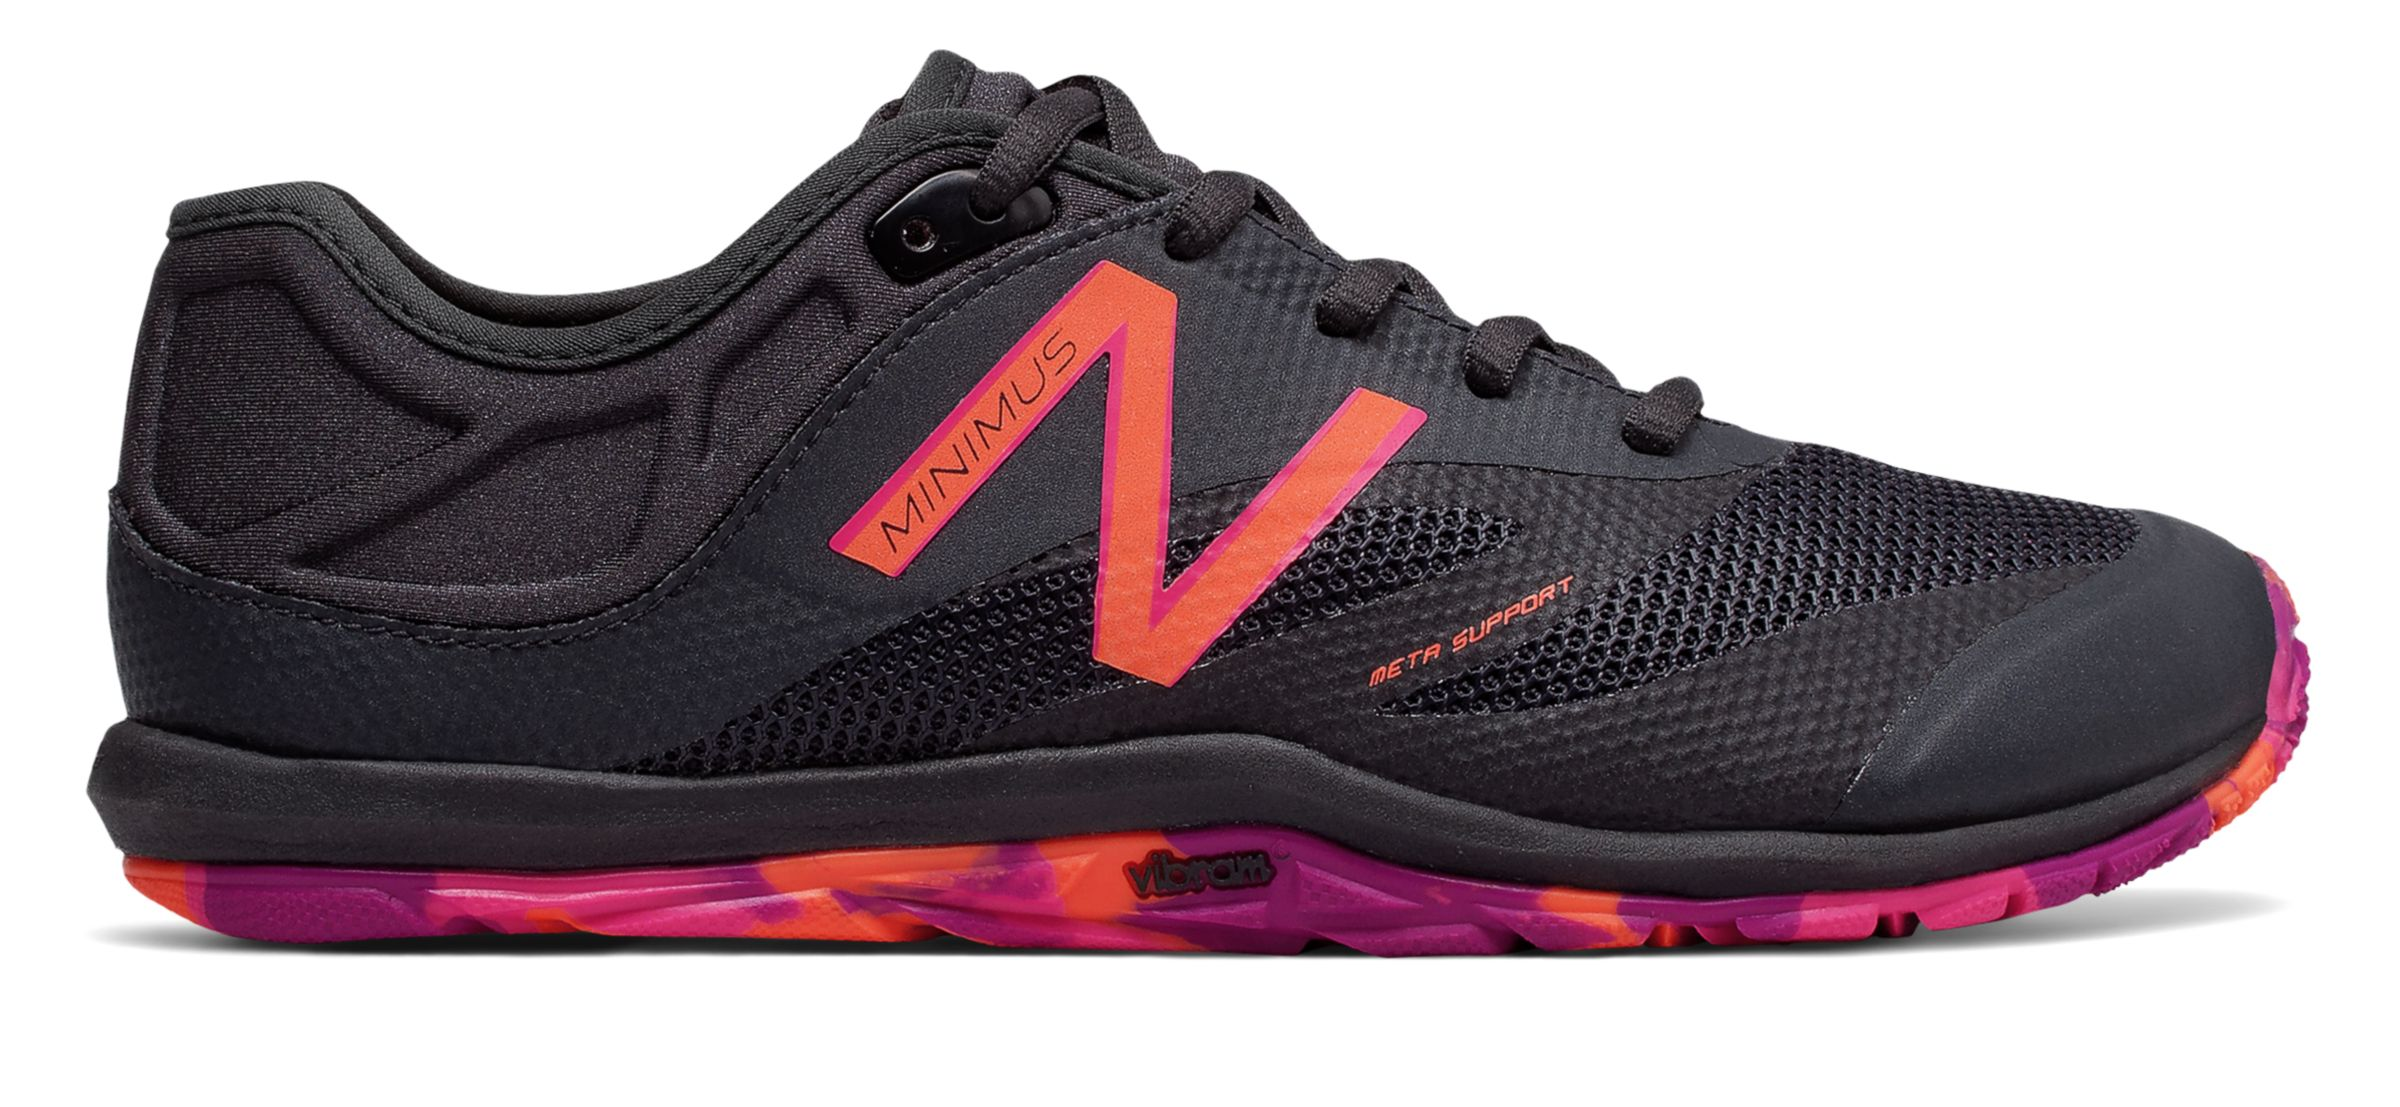 NB Minimus 20v6 Trainer, Dark Cyclone with Vivid Tangerine & Alpha Pink